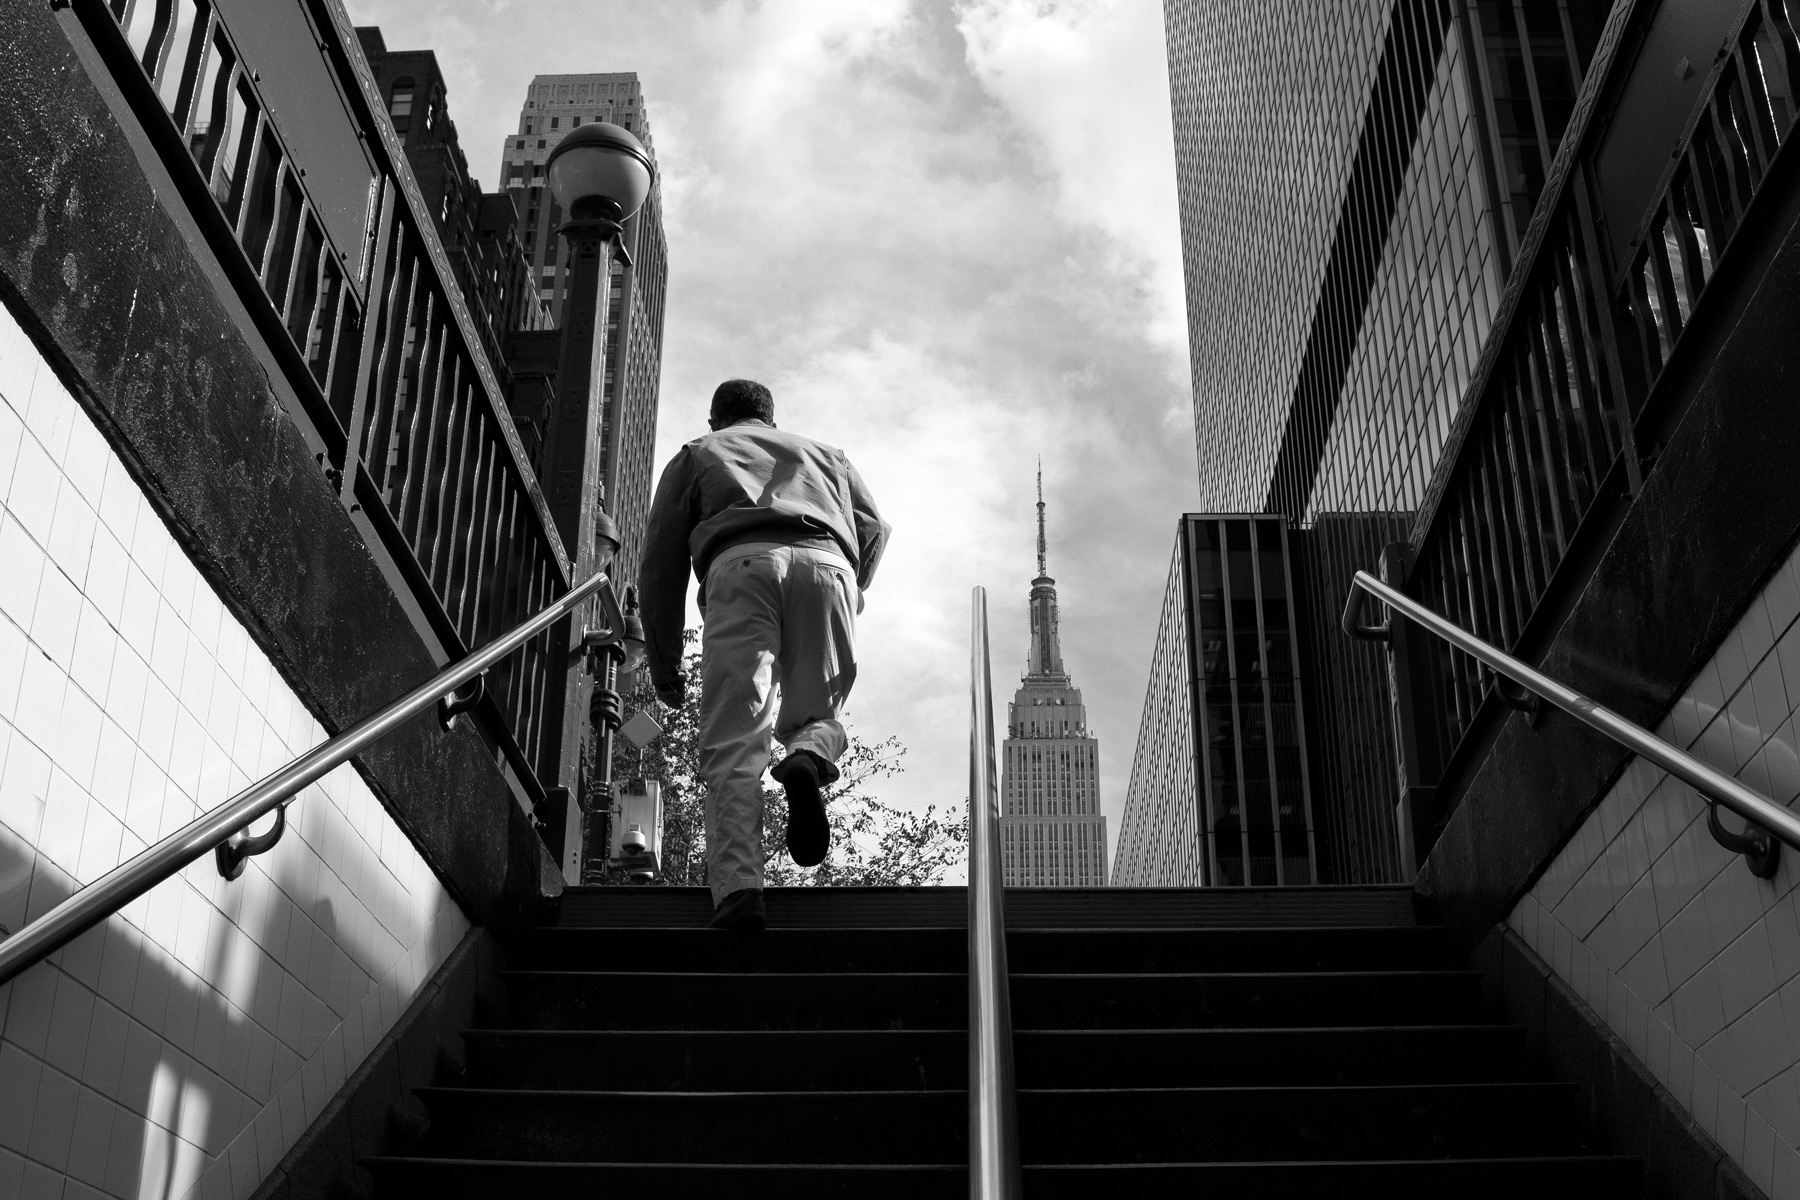 A man walking up stairs from the subway with the Empire State building in the background